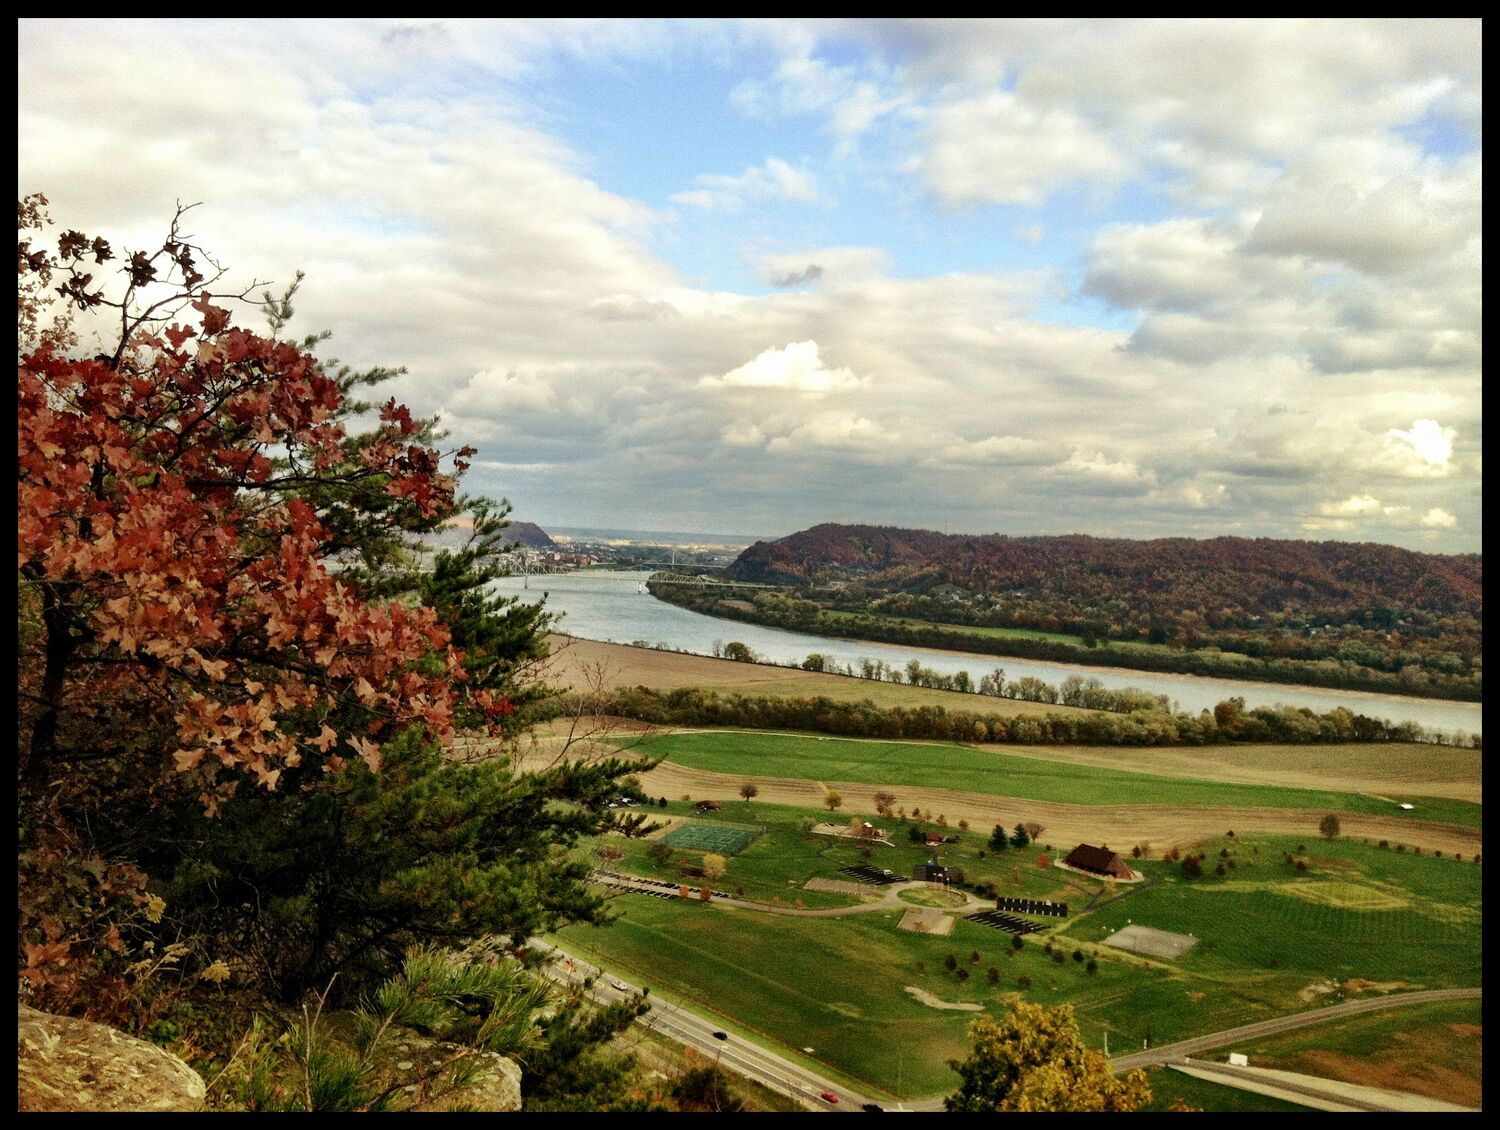 View of Riverside Park and the Allan Eckert Trail from Raven Rock, Scioto County, Ohio (Fall 2012).